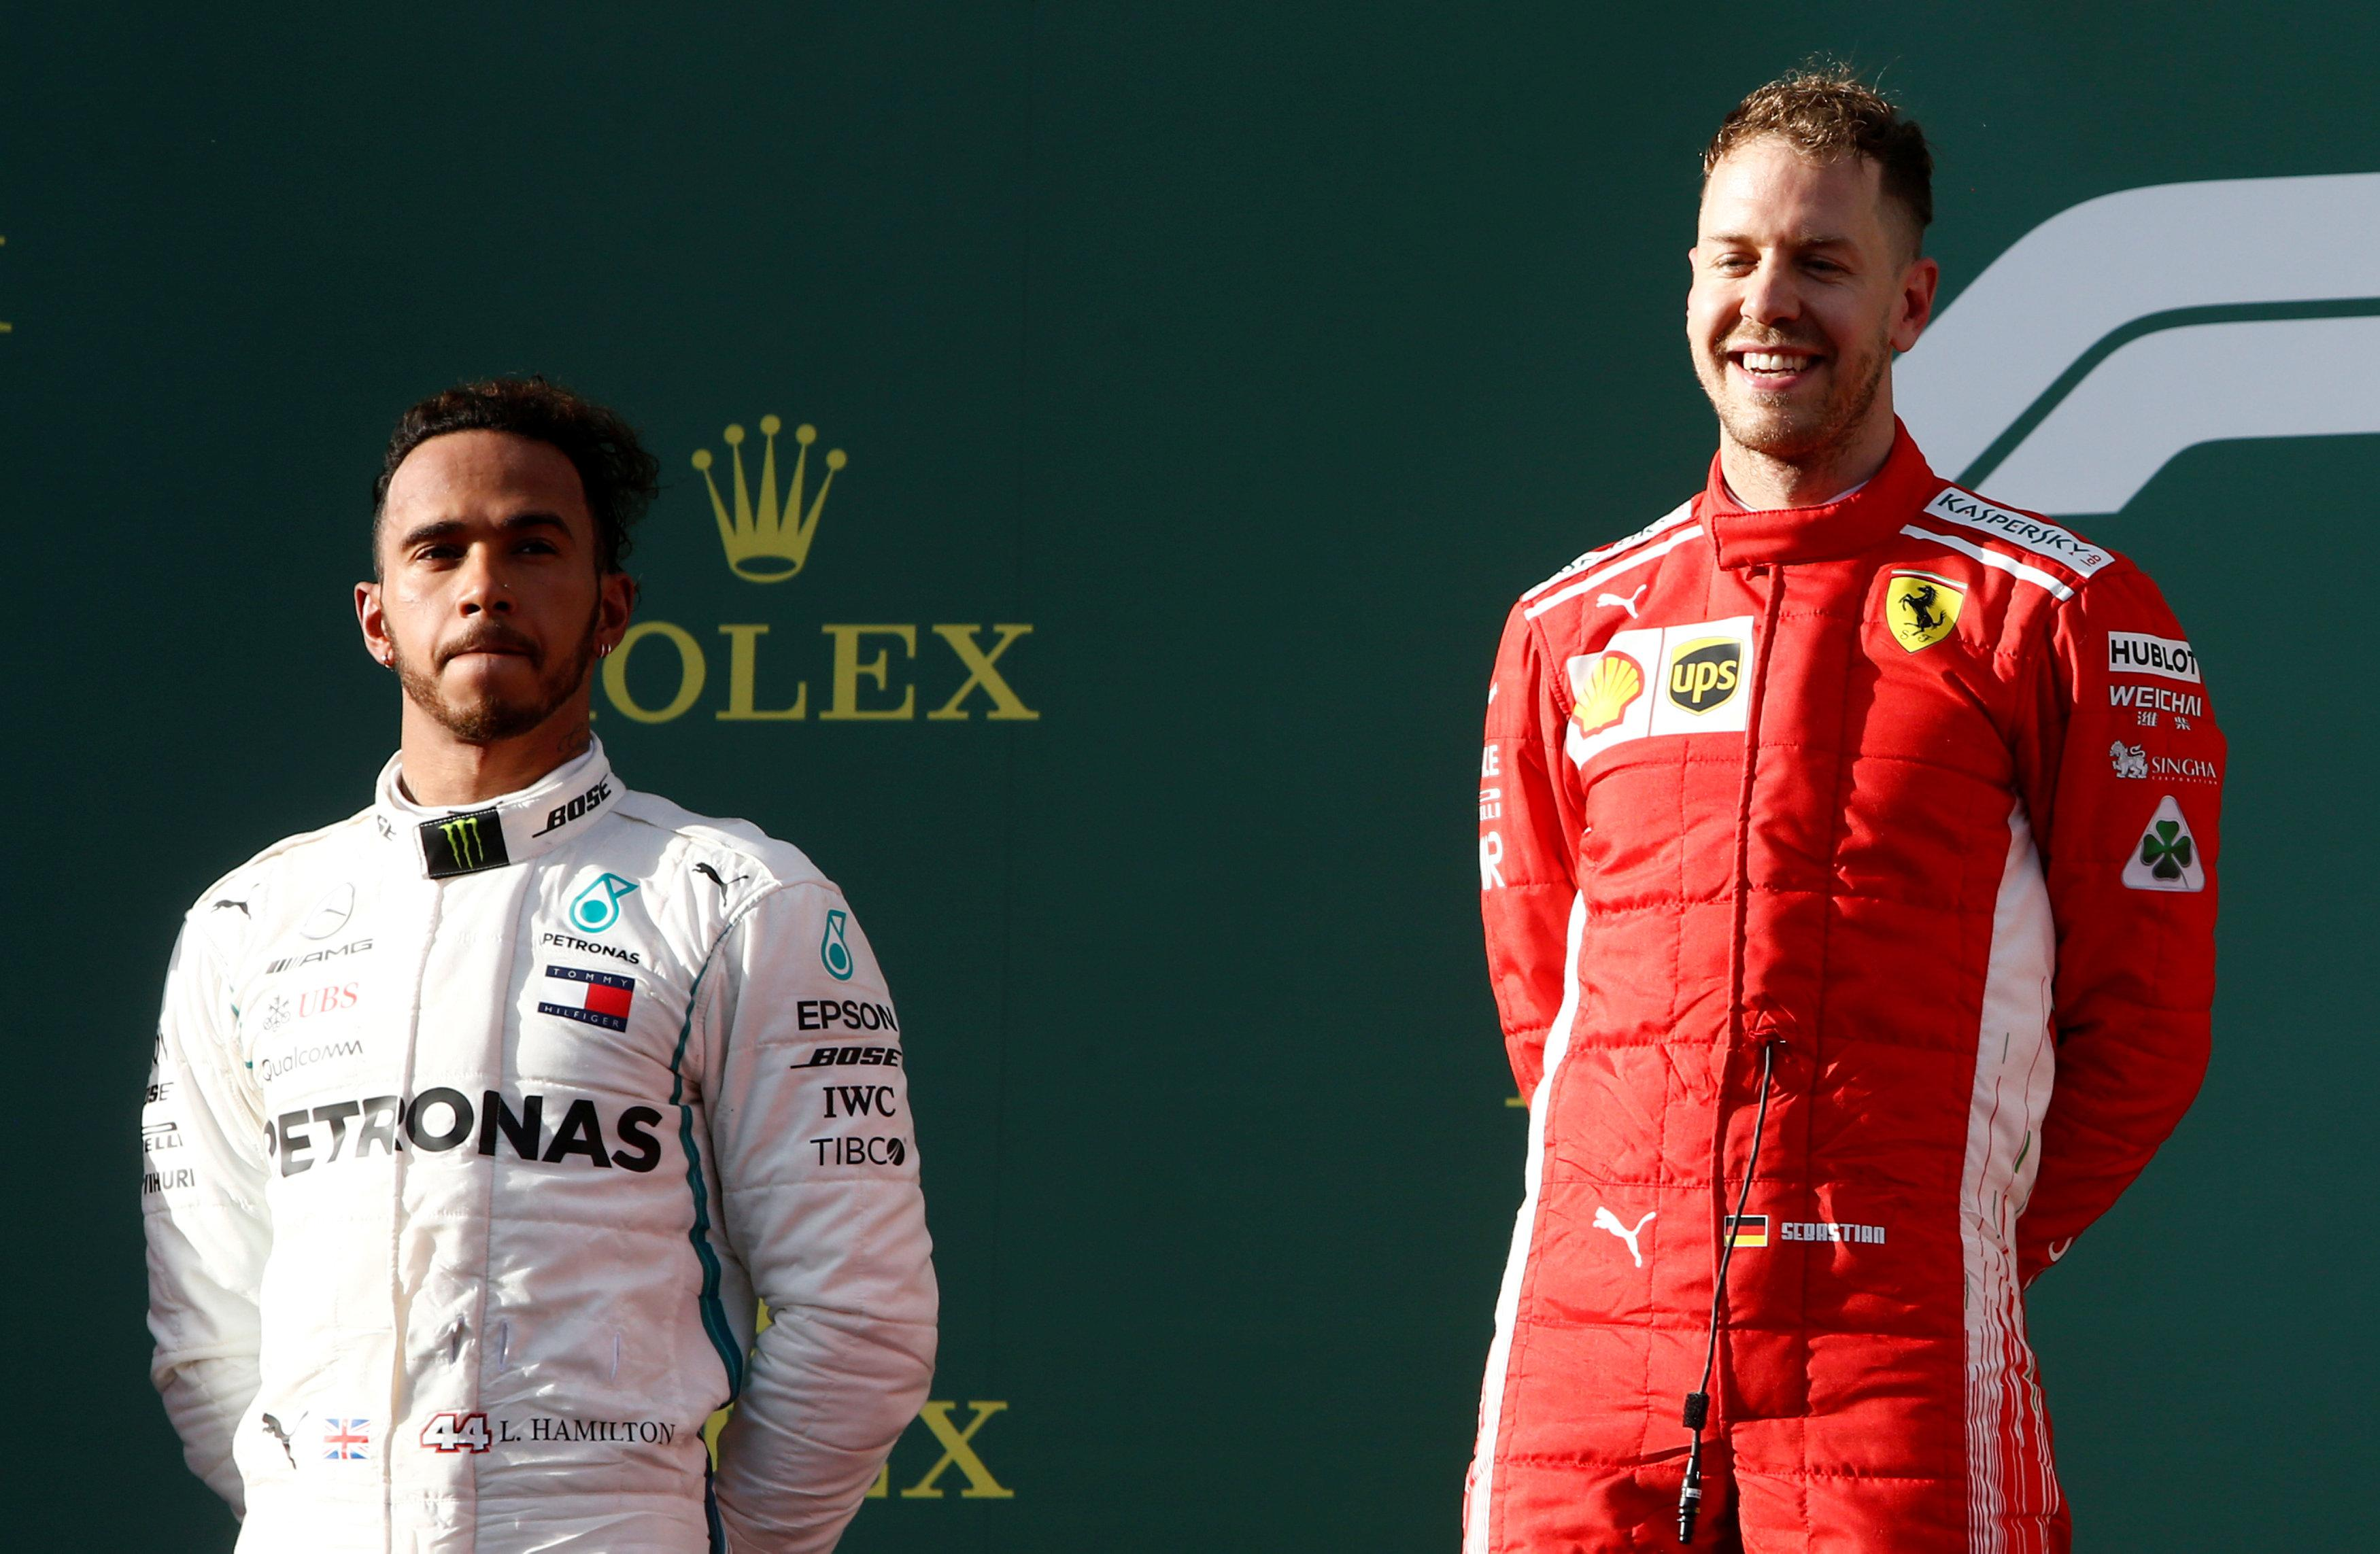 Sebastian Vettel ran out the winner in the race, with Lewis Hamilton fuming